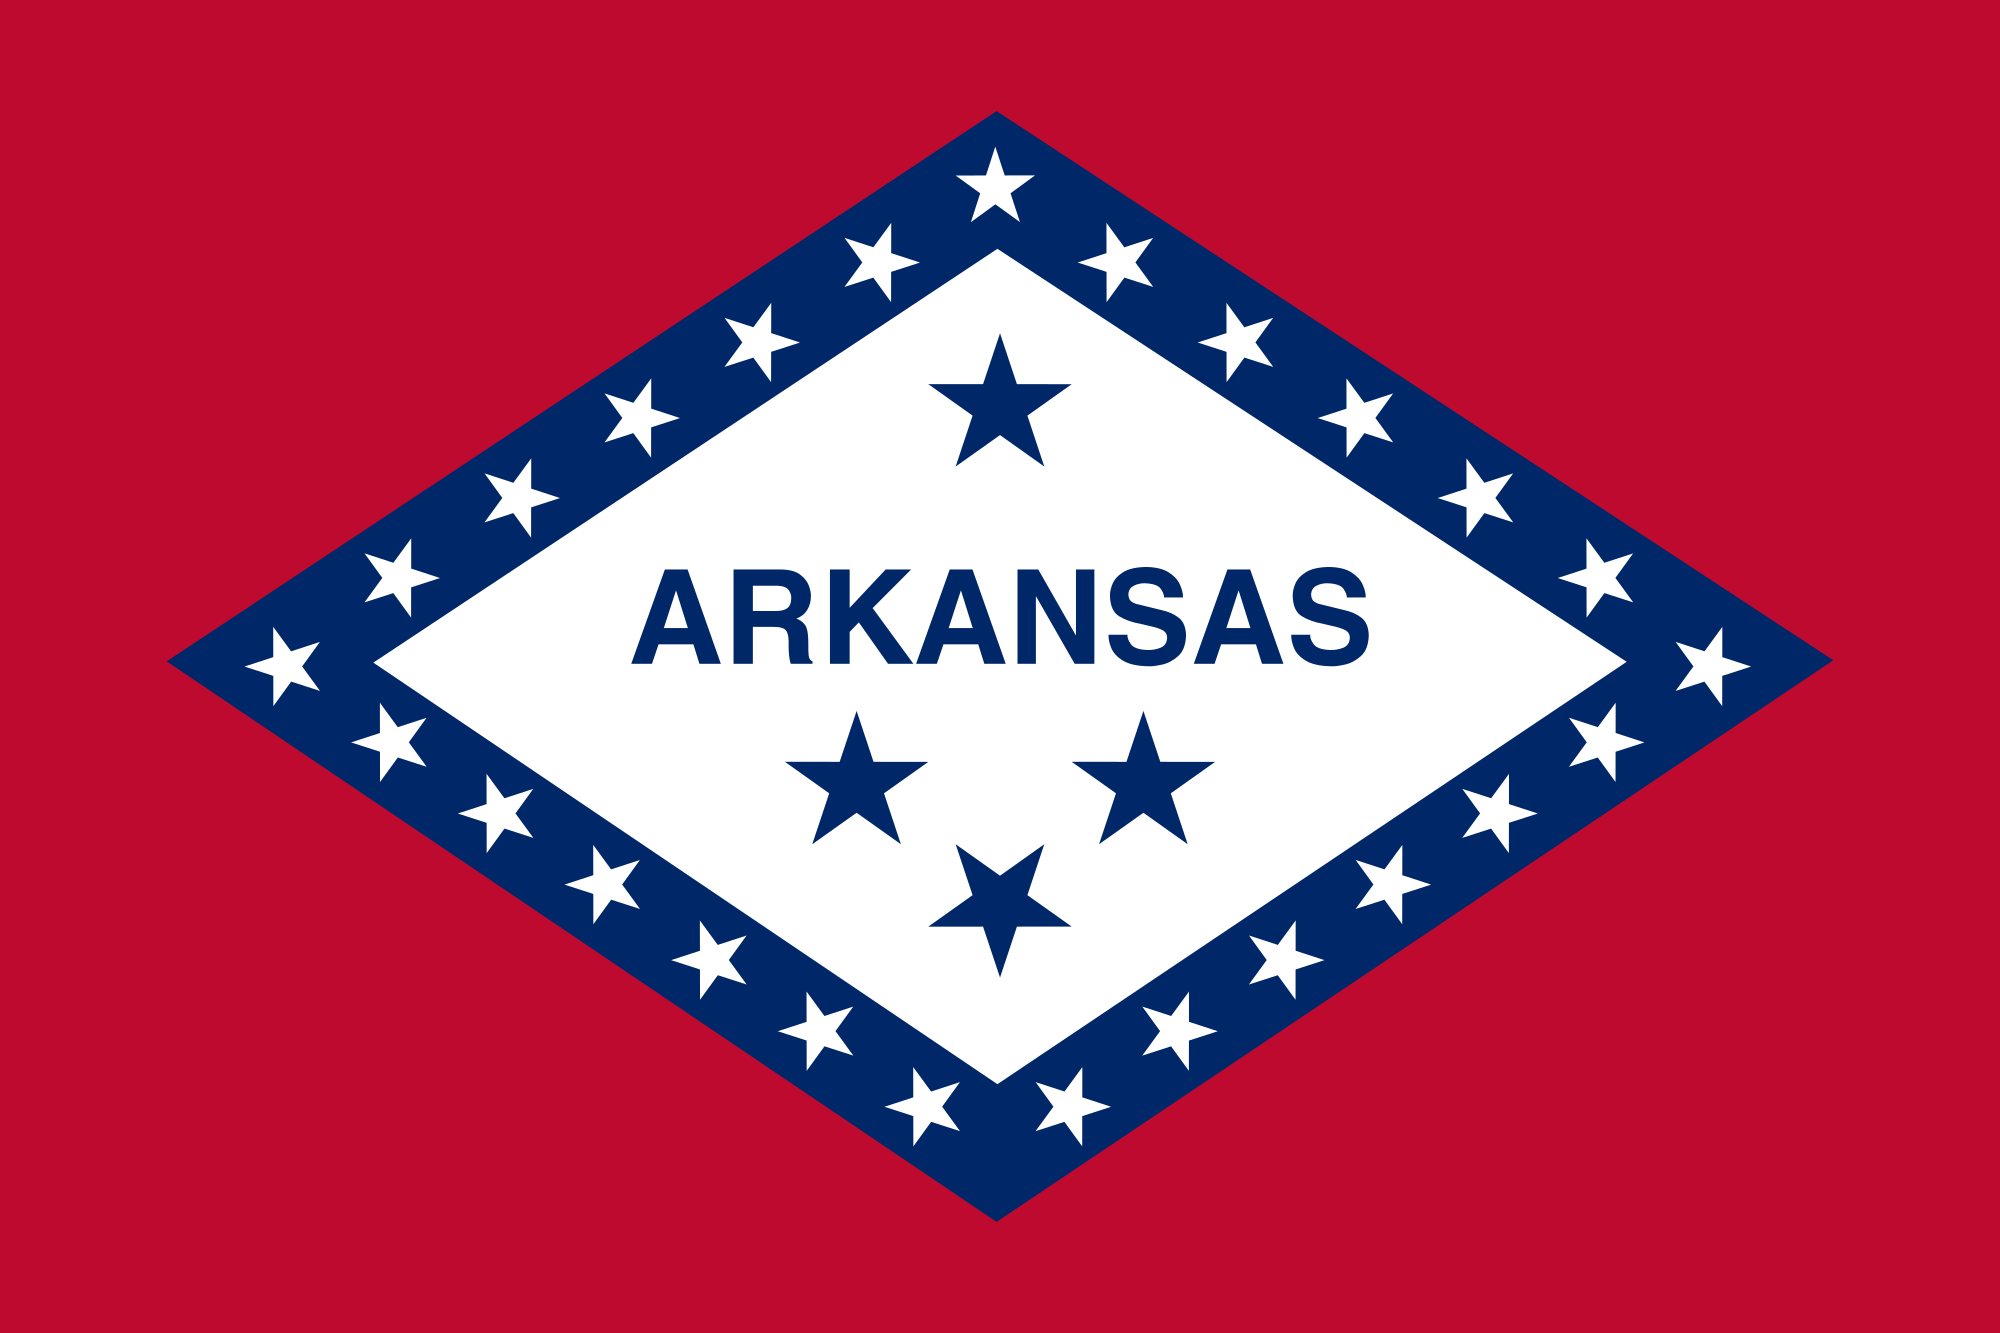 Arkansas svg #416, Download drawings